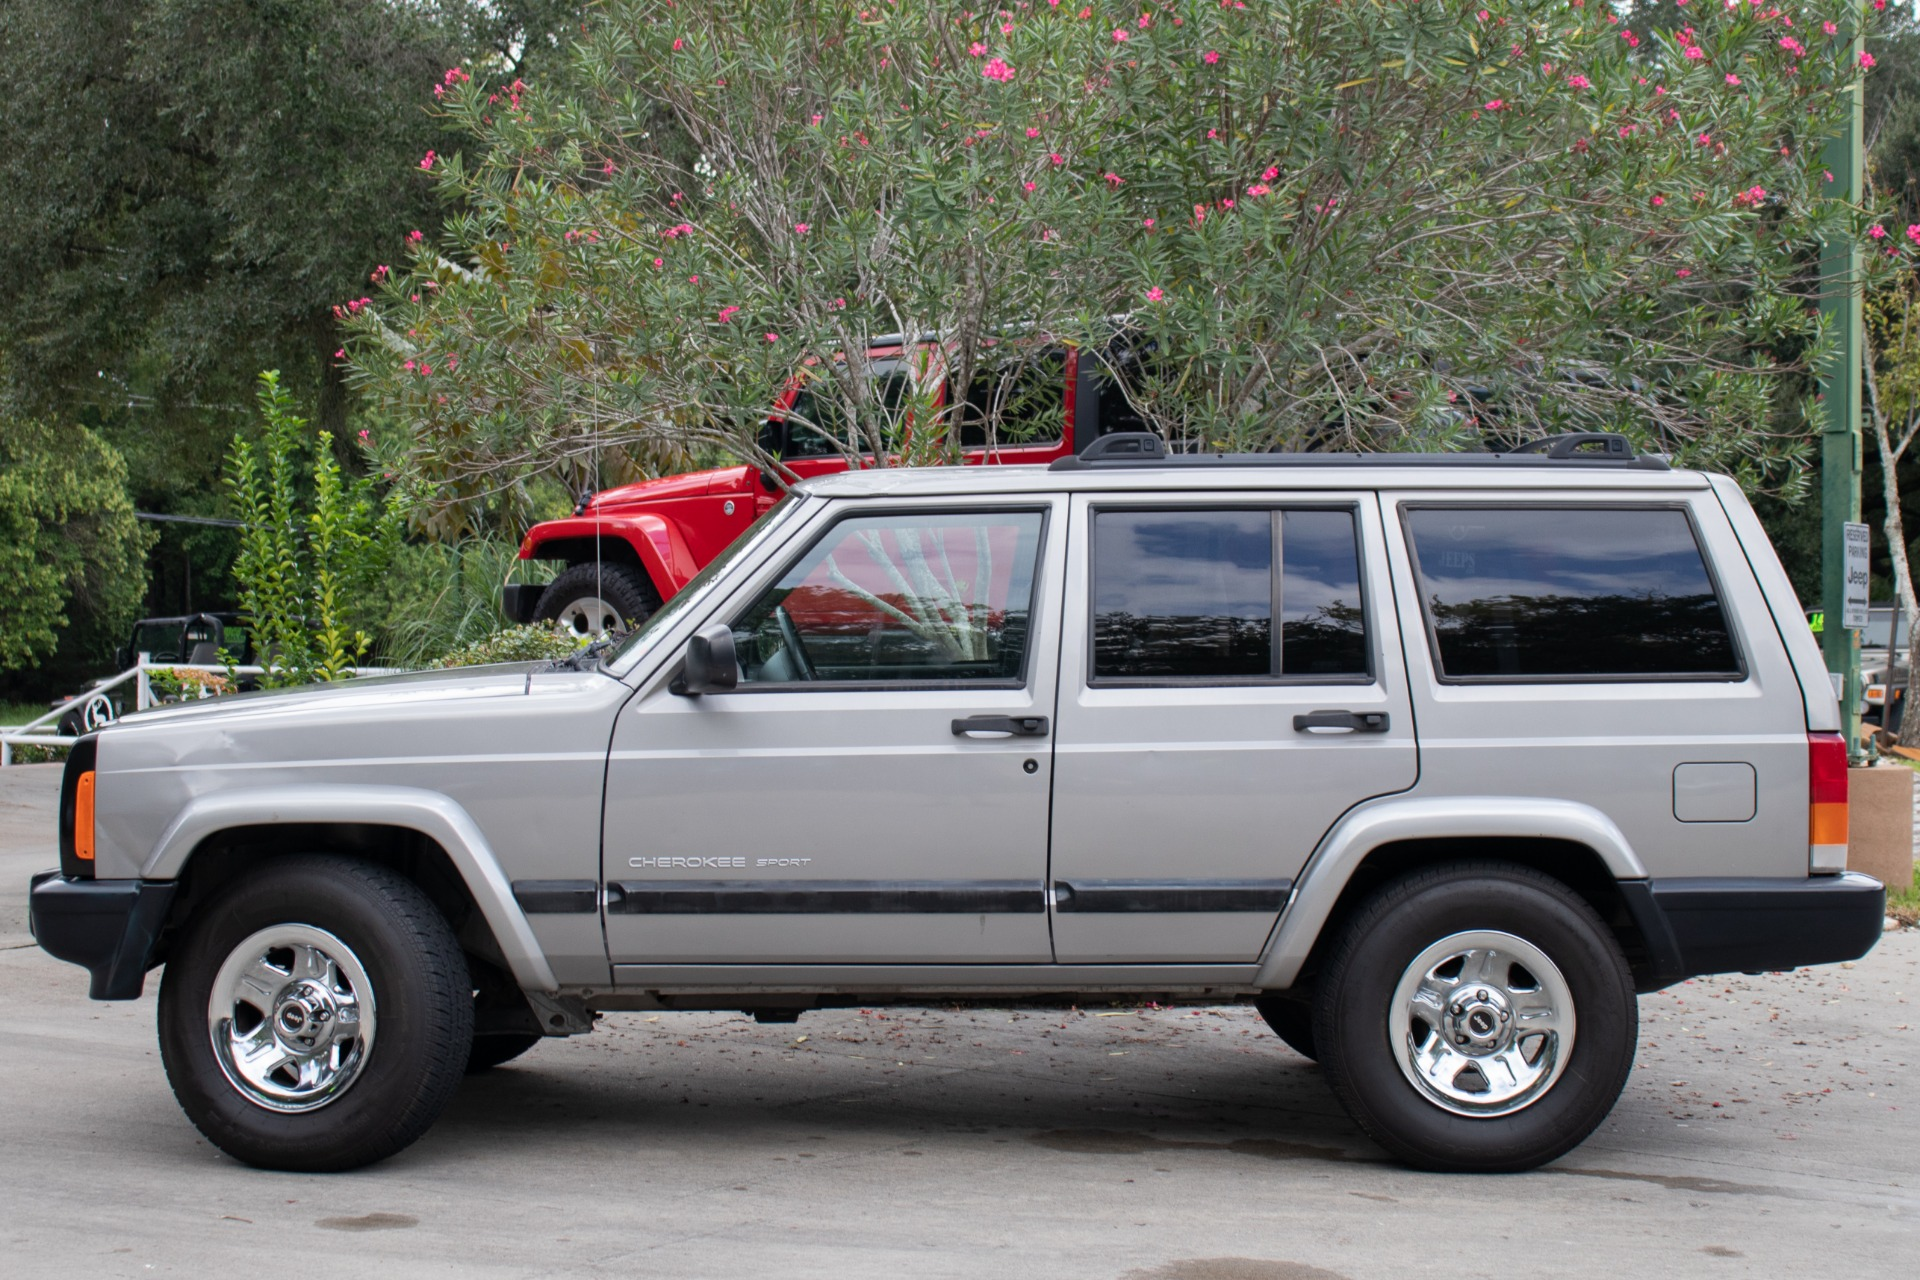 Used-2001-Jeep-Cherokee-4dr-Sport